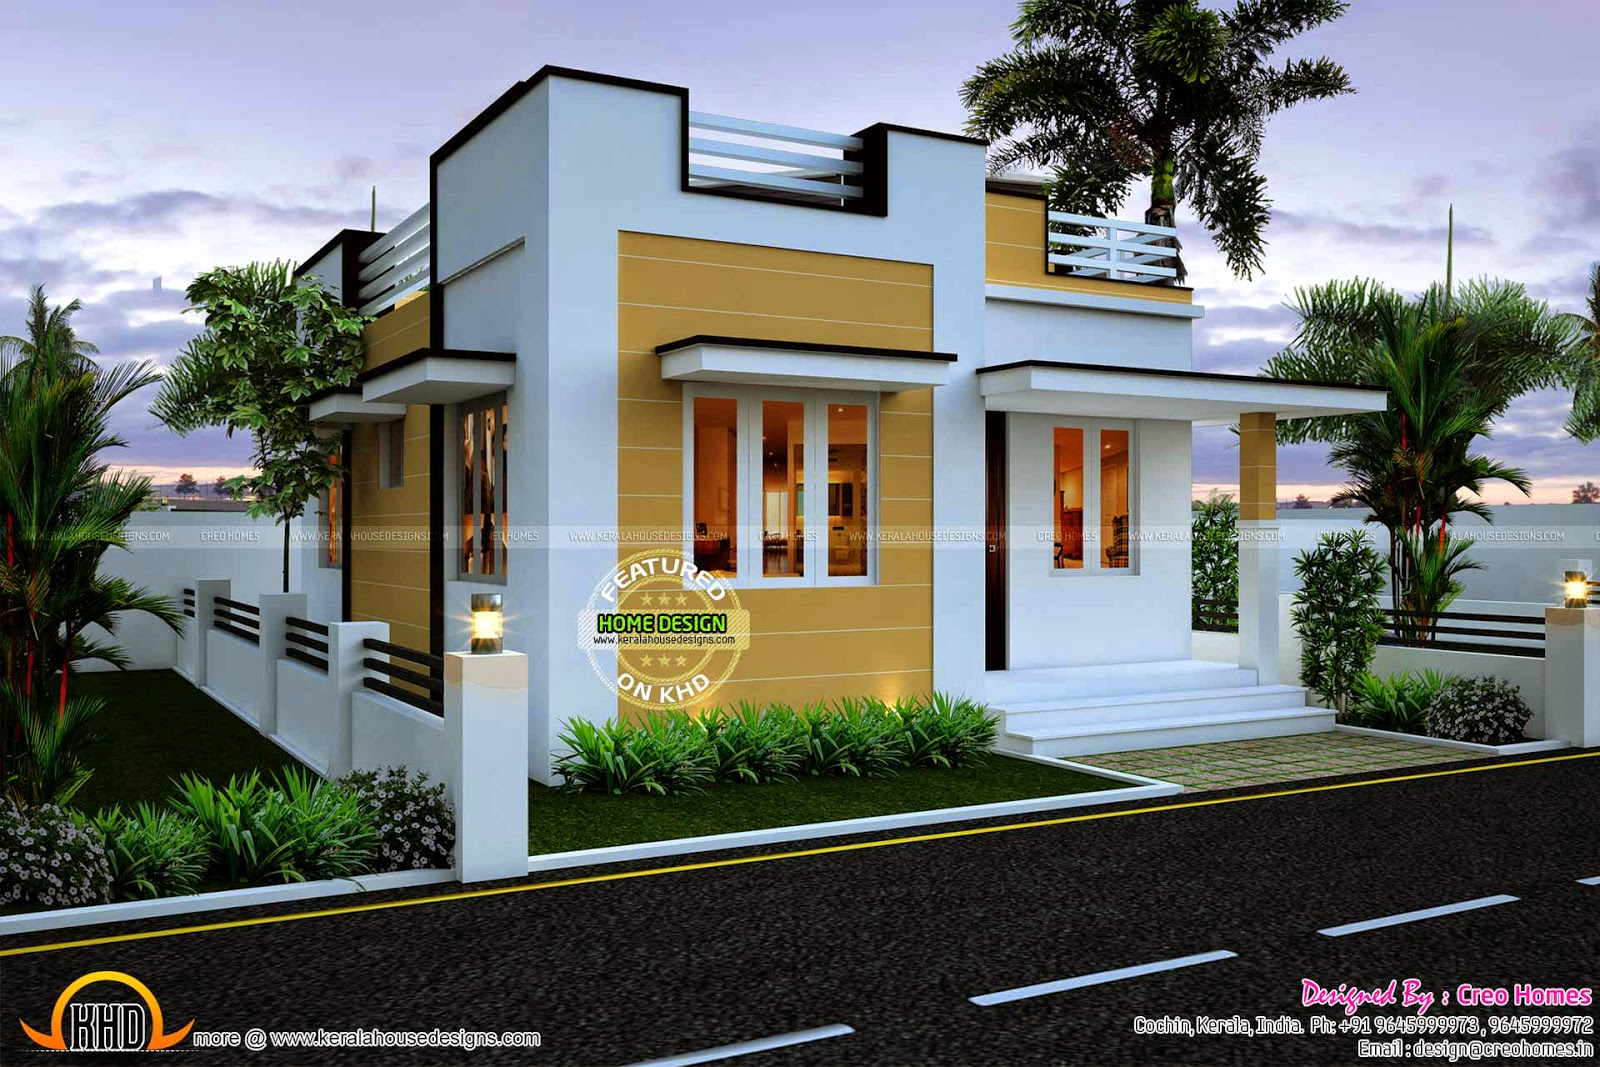 House for 5 lakhs in kerala kerala home design and floor Low cost interior design for homes in kerala